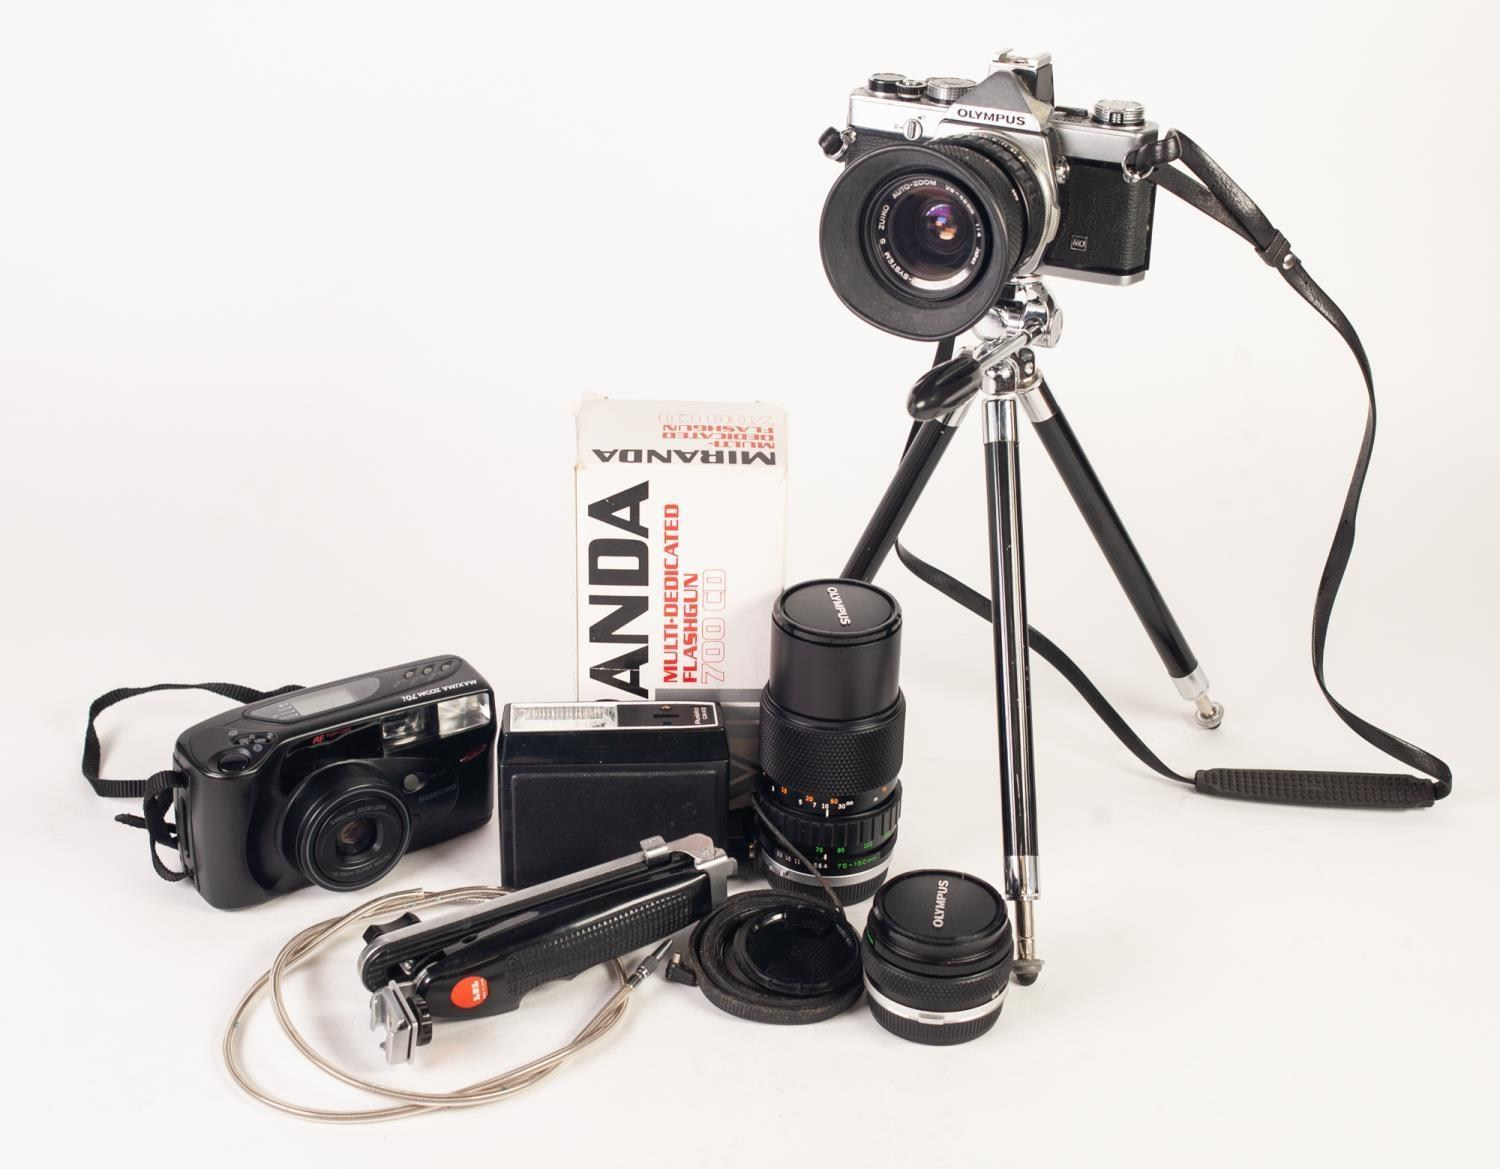 Lot 209 - OLYMPUS OM-1N 35mm SLR ROLL FILM CAMERA, WITH f4, 28-48mm ZOOM LENS, together with an OLYMPUS f4,